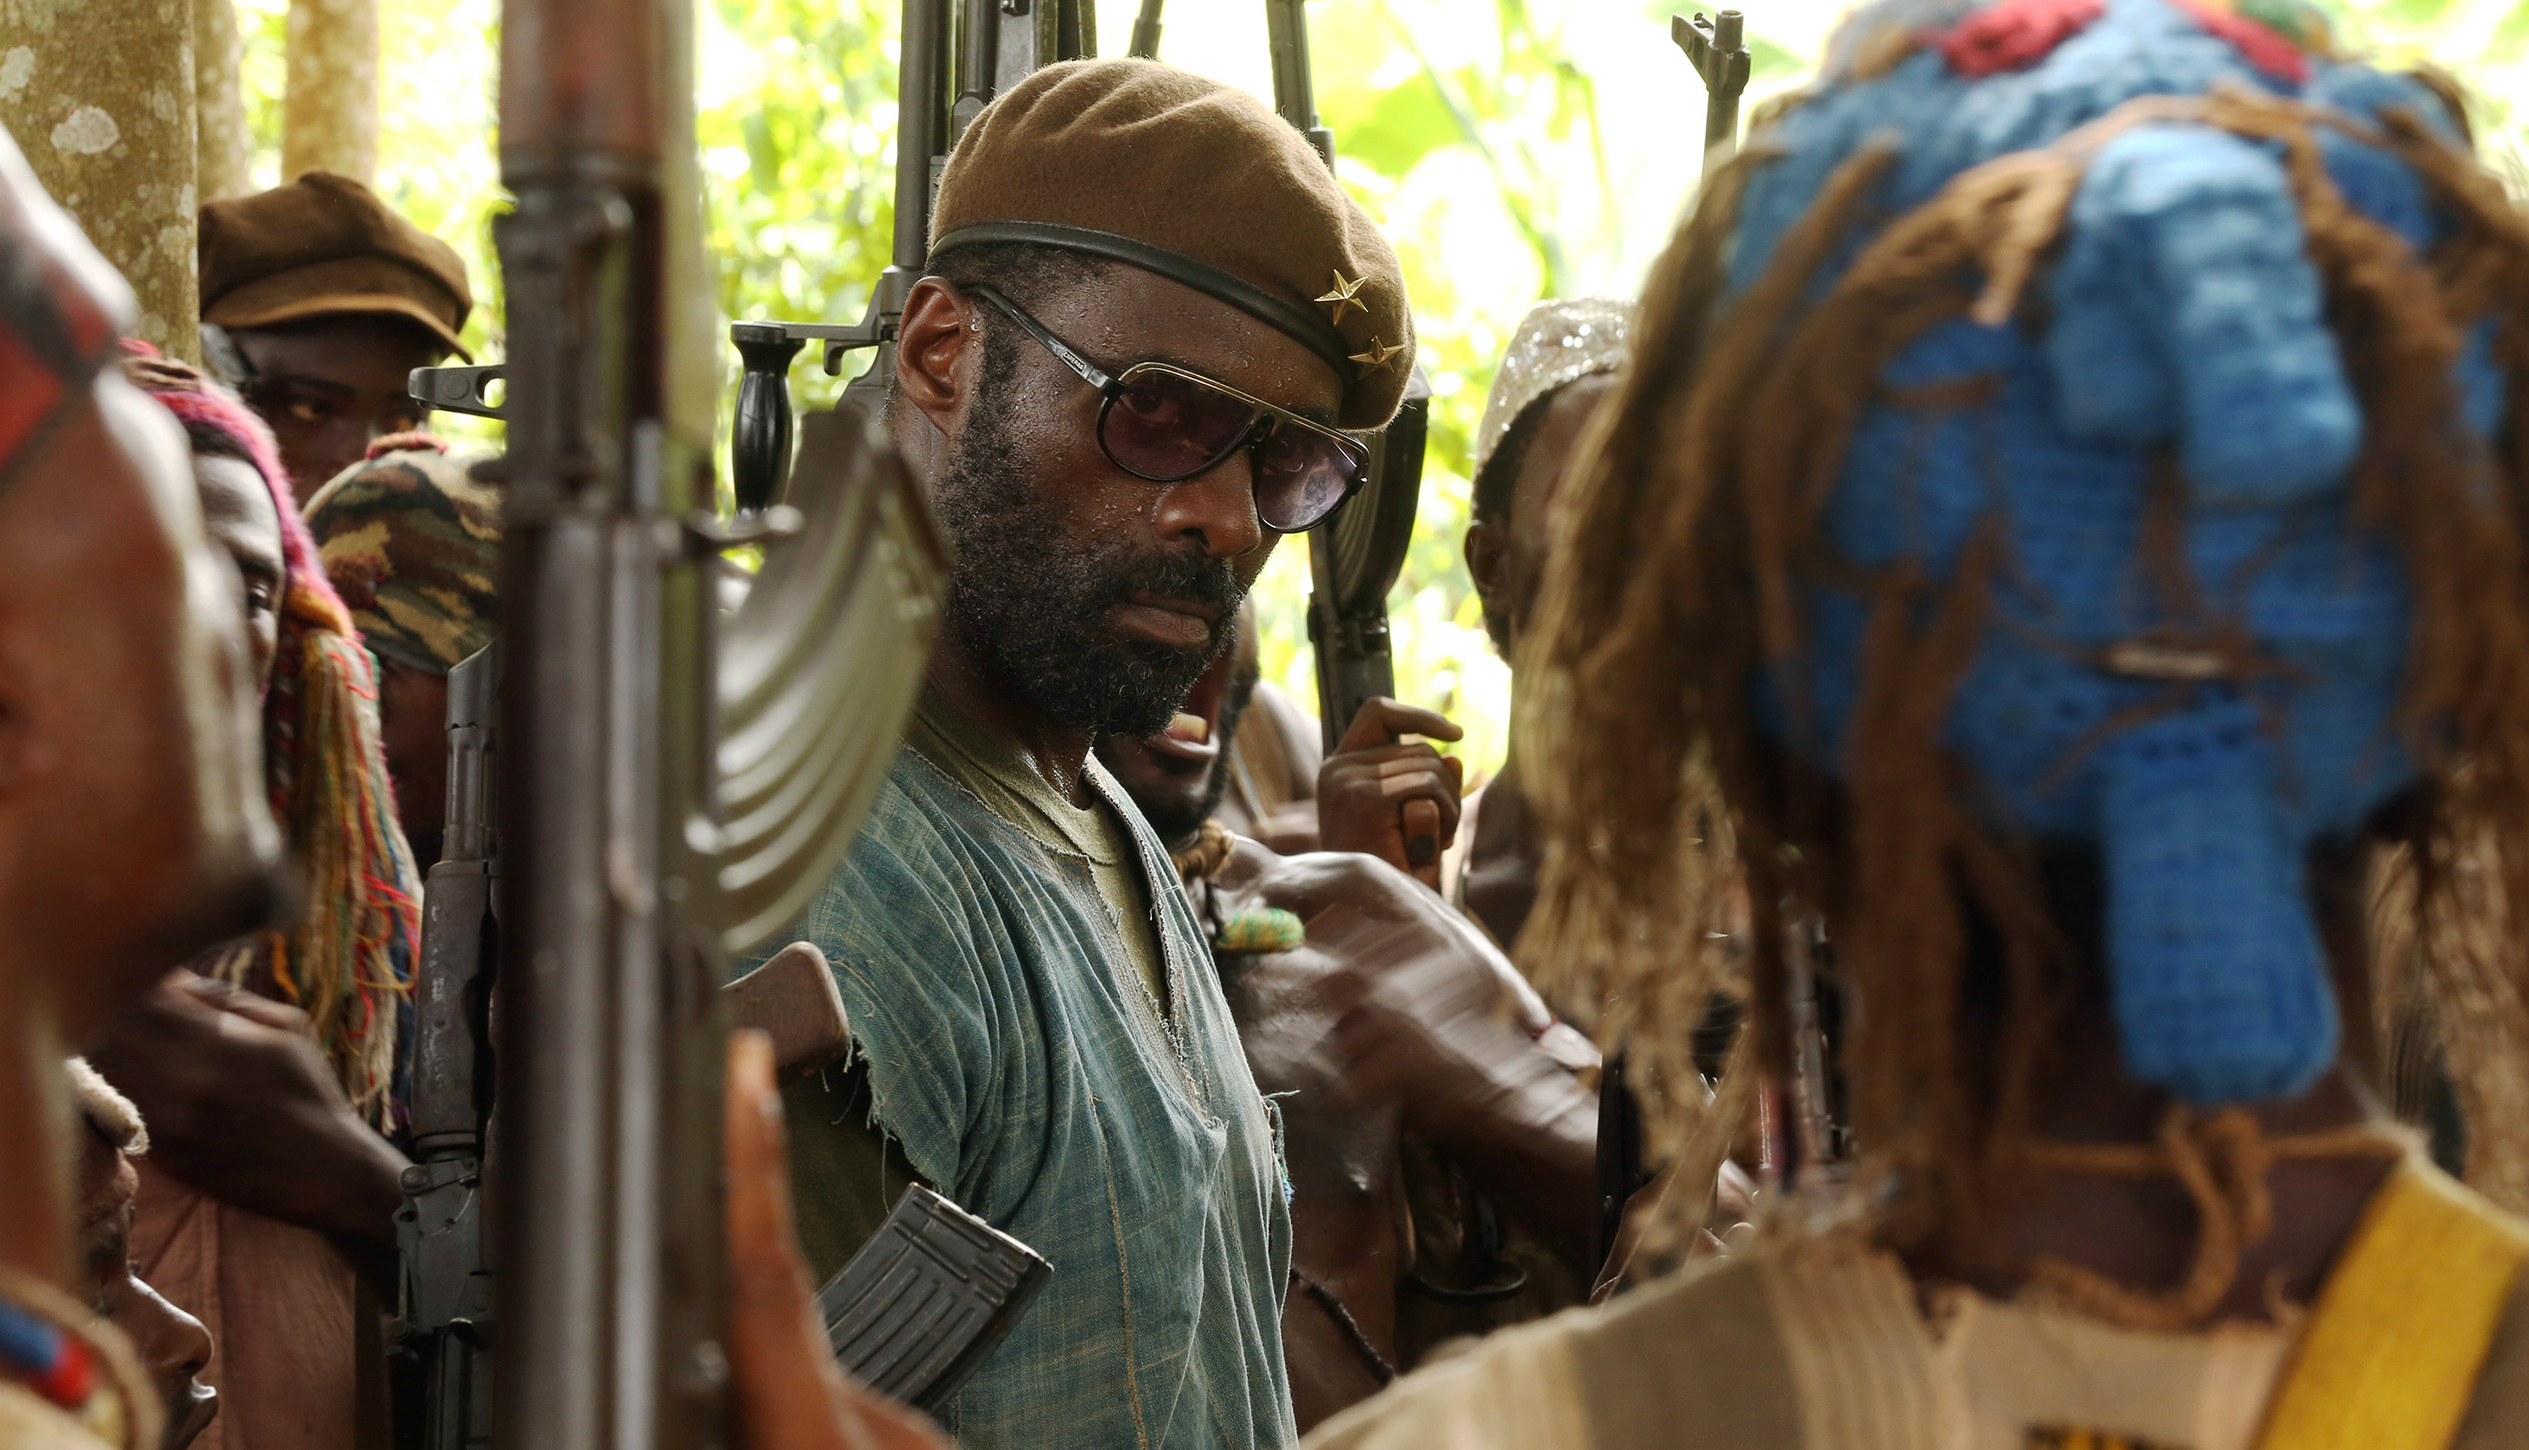 BEASTS OF NO NATION, Idris Elba, 2015. ©Bleecker Street Media/Courtesy Everett Collection